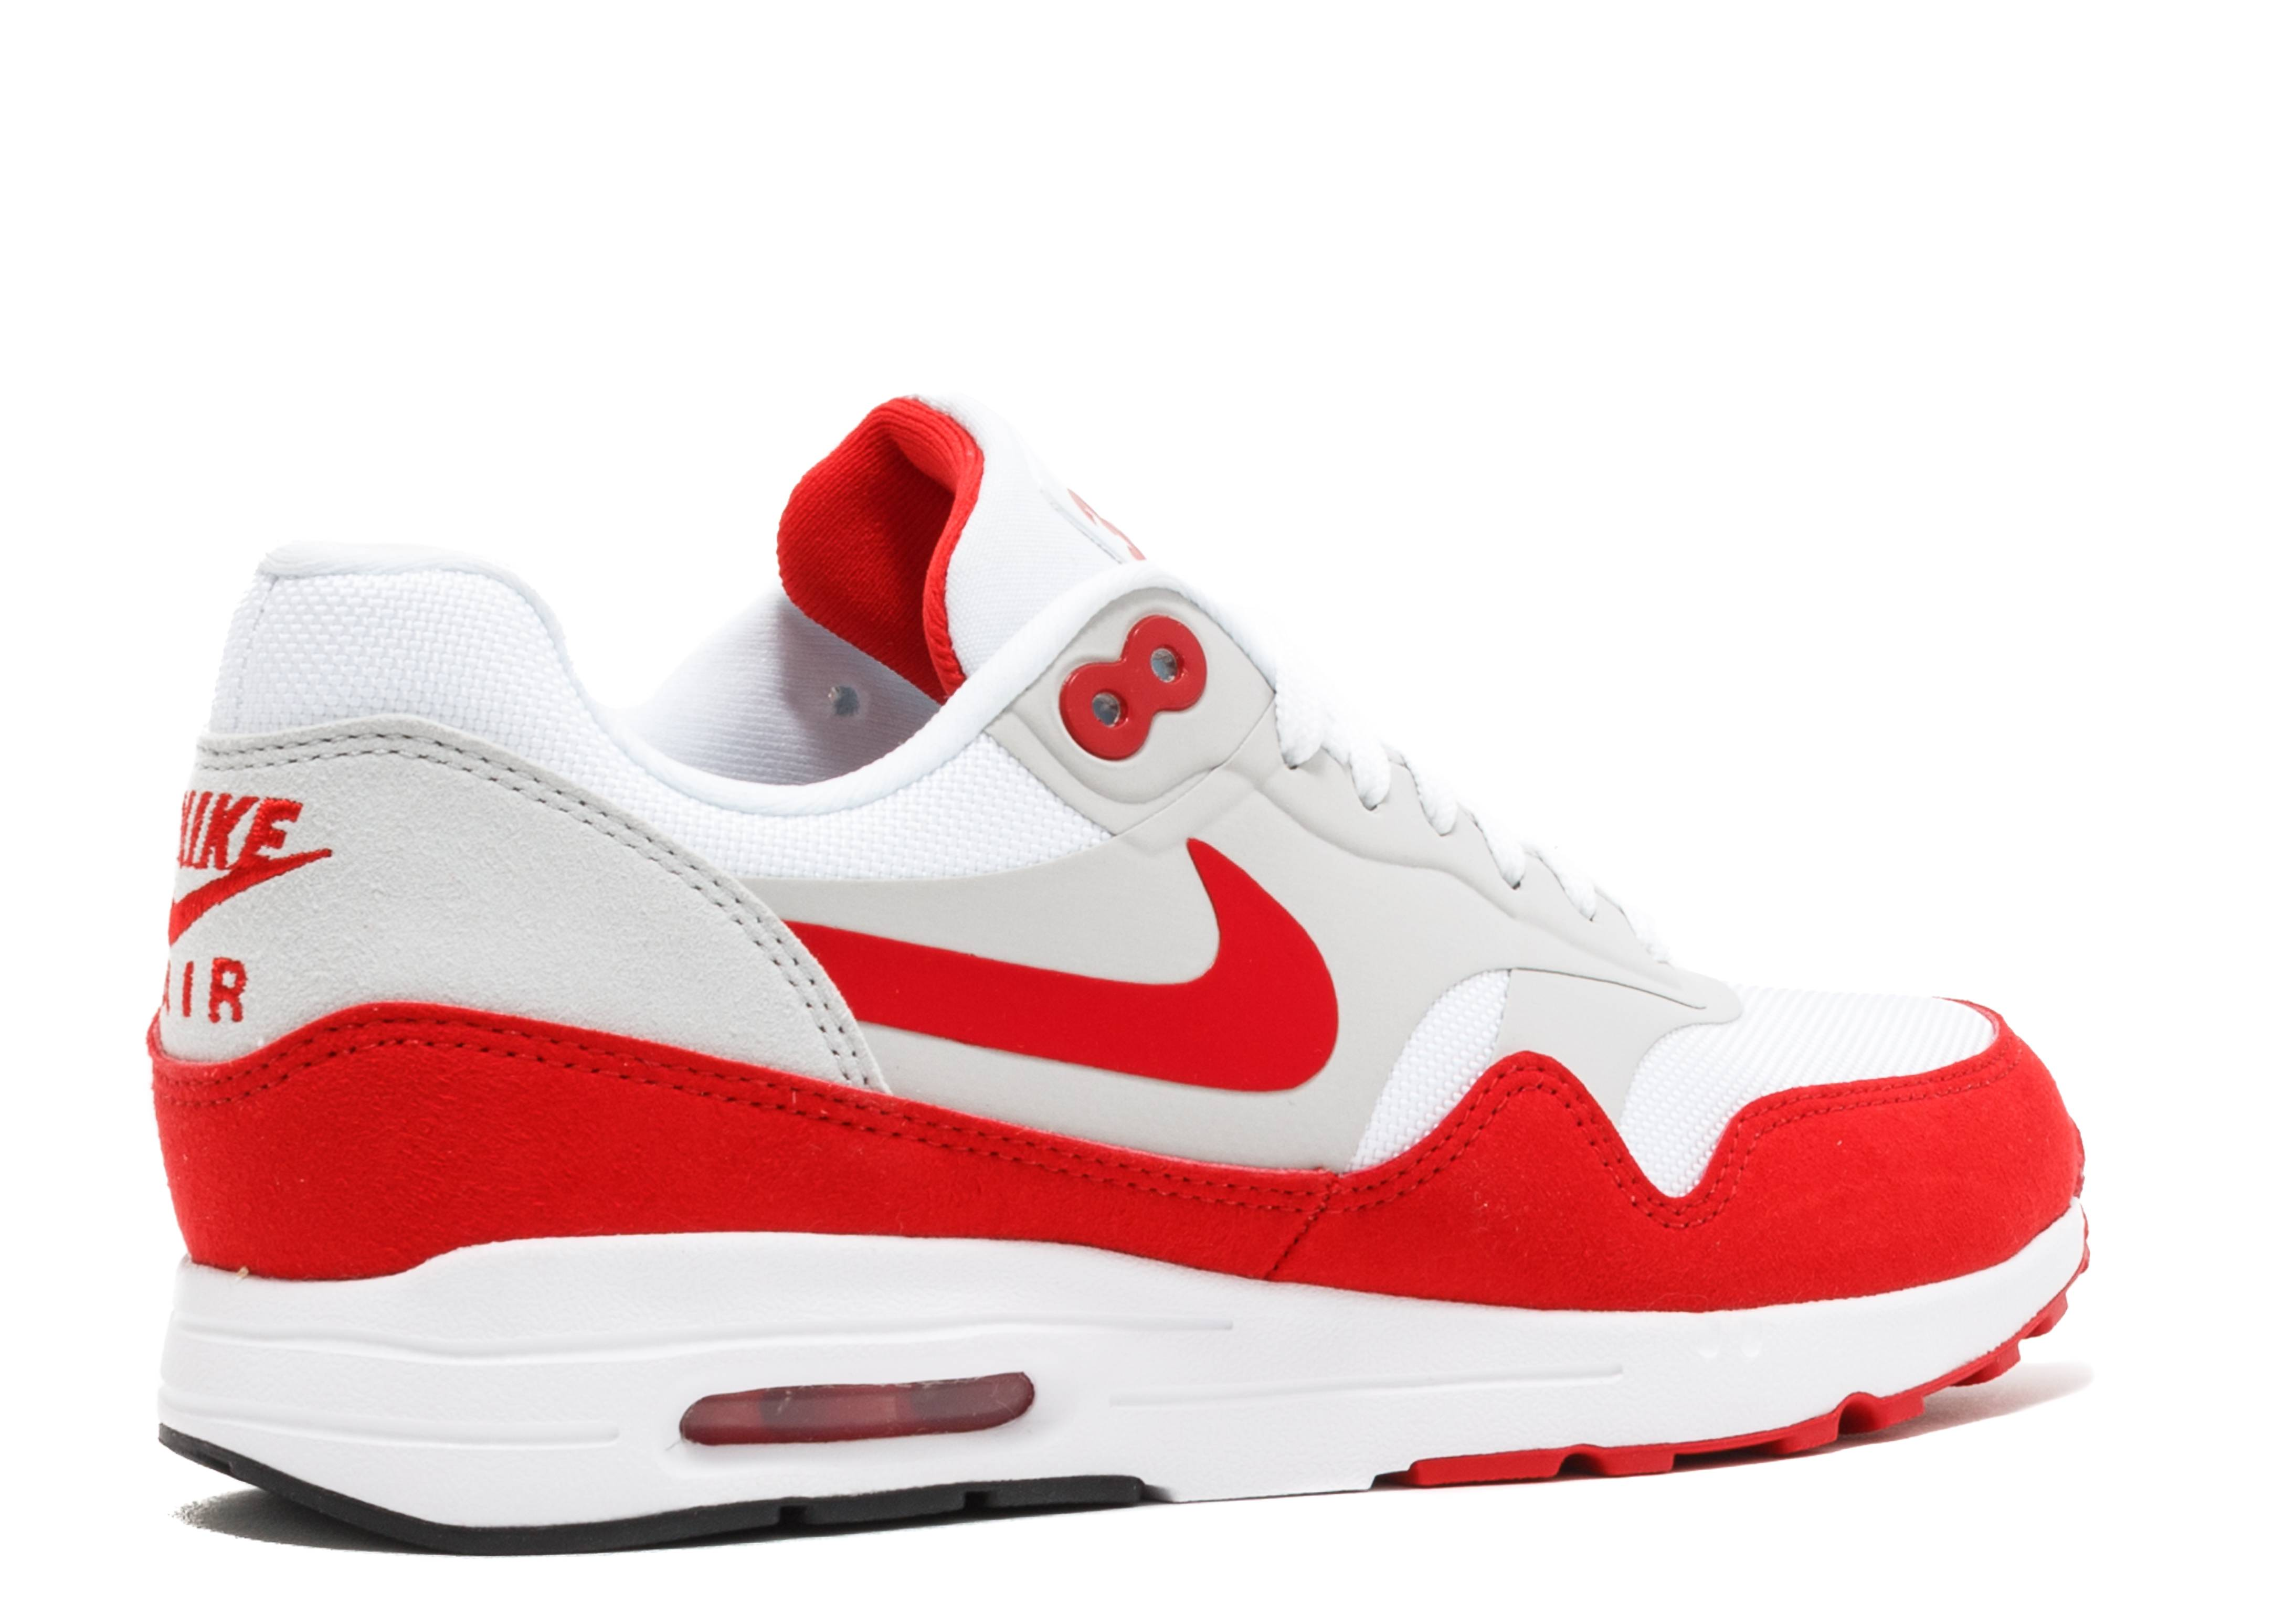 w nike air max 1 ultra 2 0 le air max day nike 908489 101 white unversity red flight club. Black Bedroom Furniture Sets. Home Design Ideas